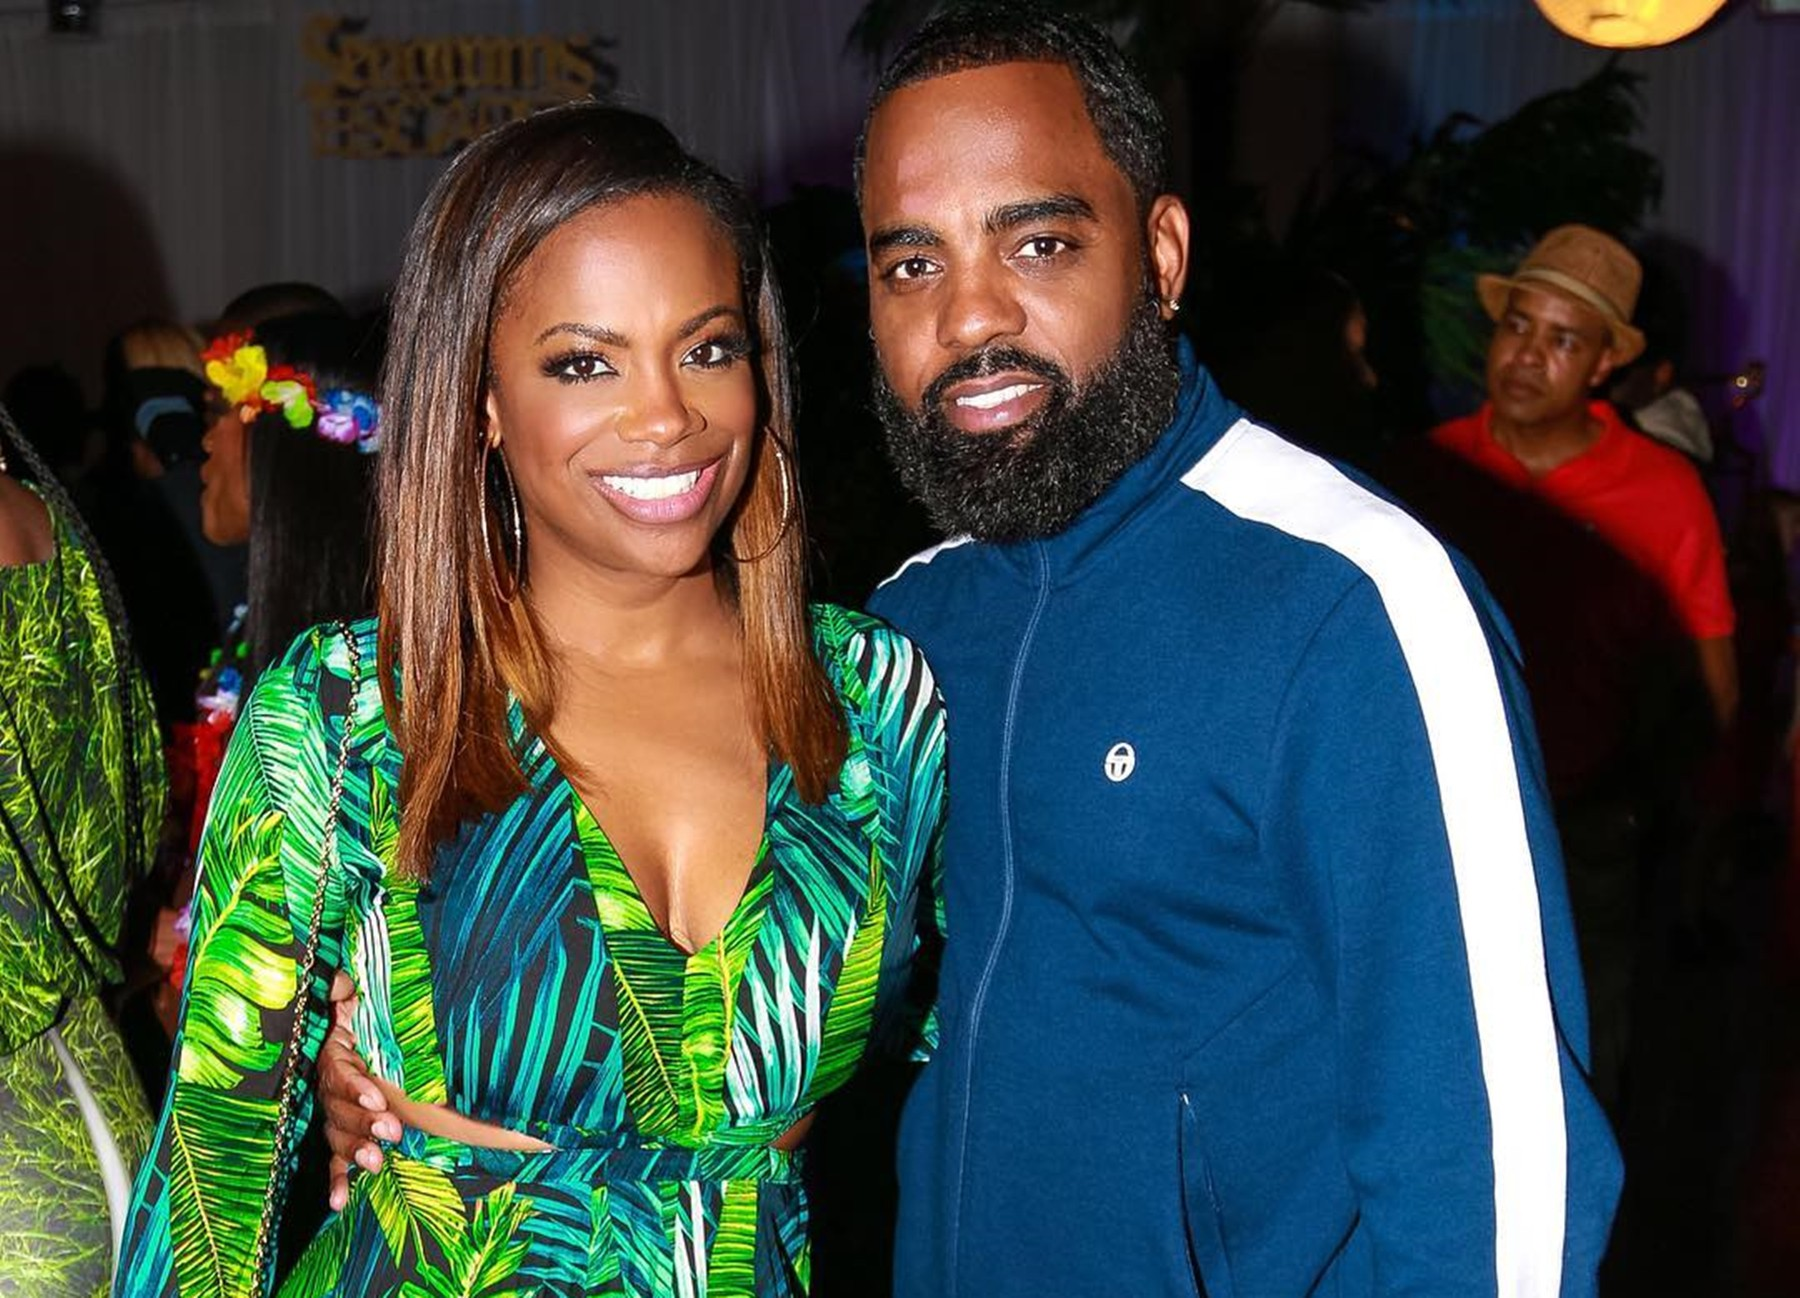 """kandi-burruss-describes-her-love-with-todd-tucker-with-a-message-on-social-media-tiny-harris-is-here-for-it-and-fans-wish-them-a-happy-anniversary"""